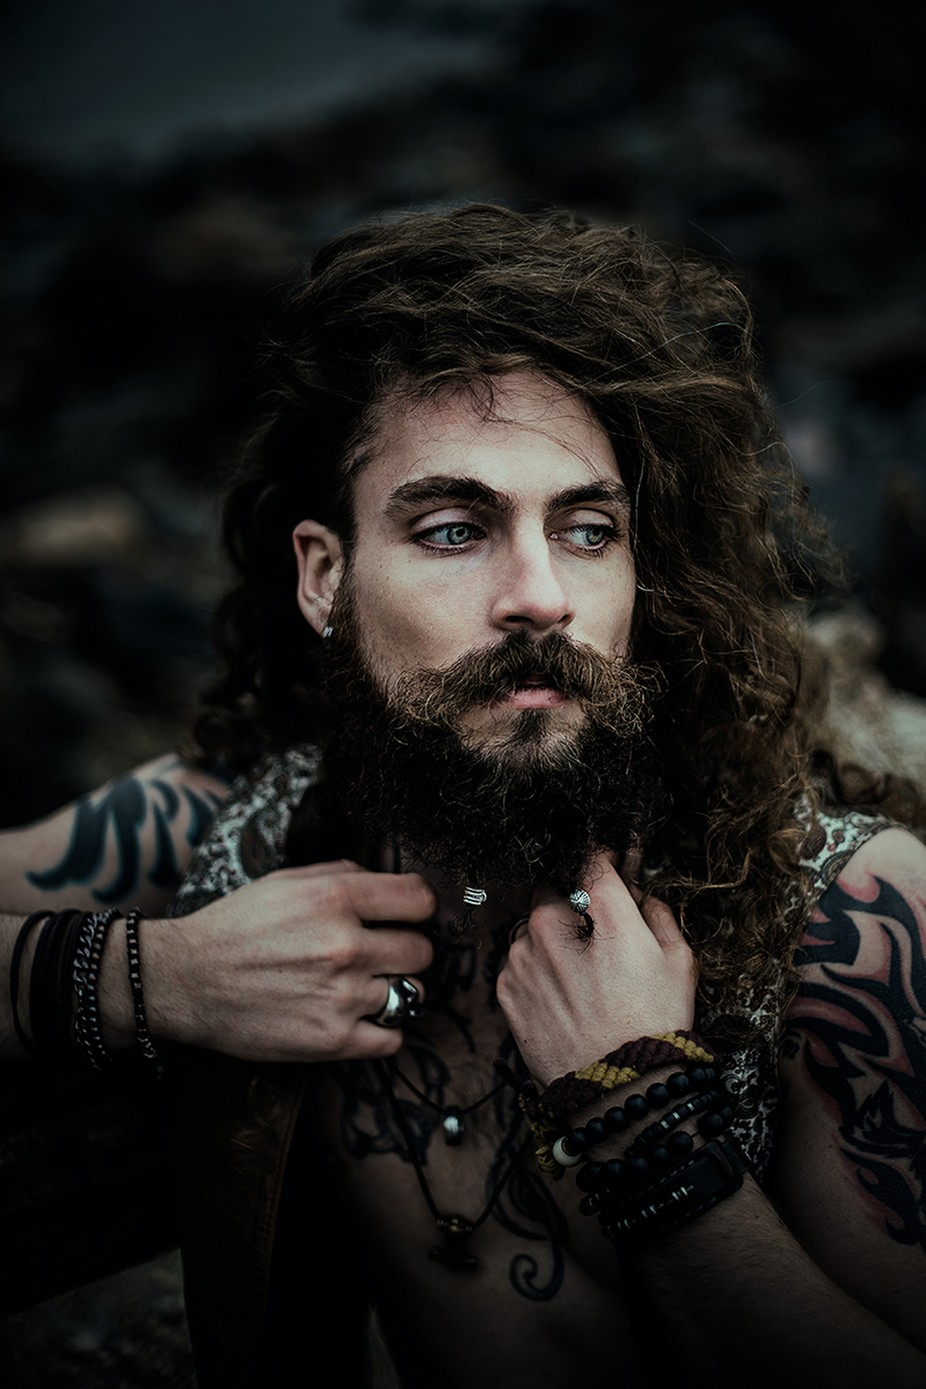 Amon by sollenaphotography - Beards and Mustaches Photo Contest